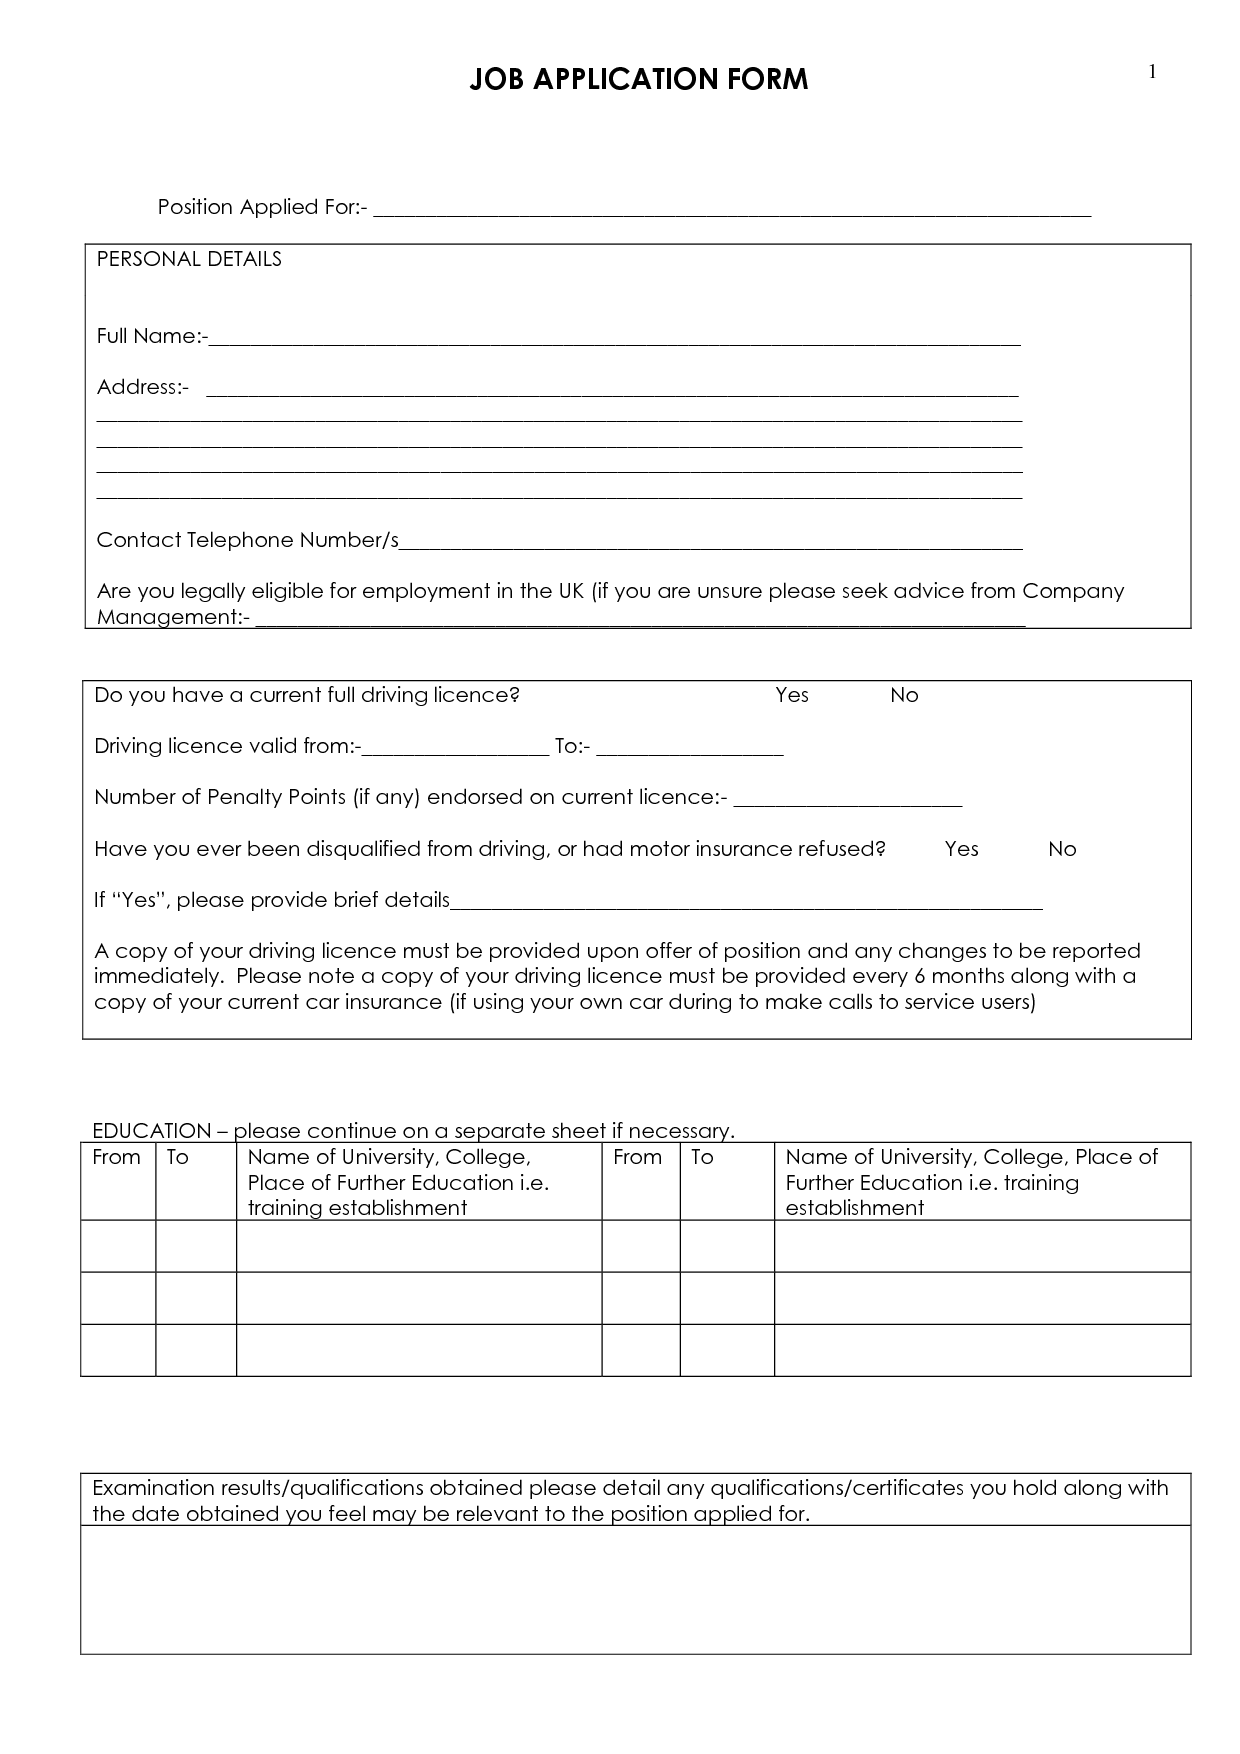 job application form to print blank job application forms books